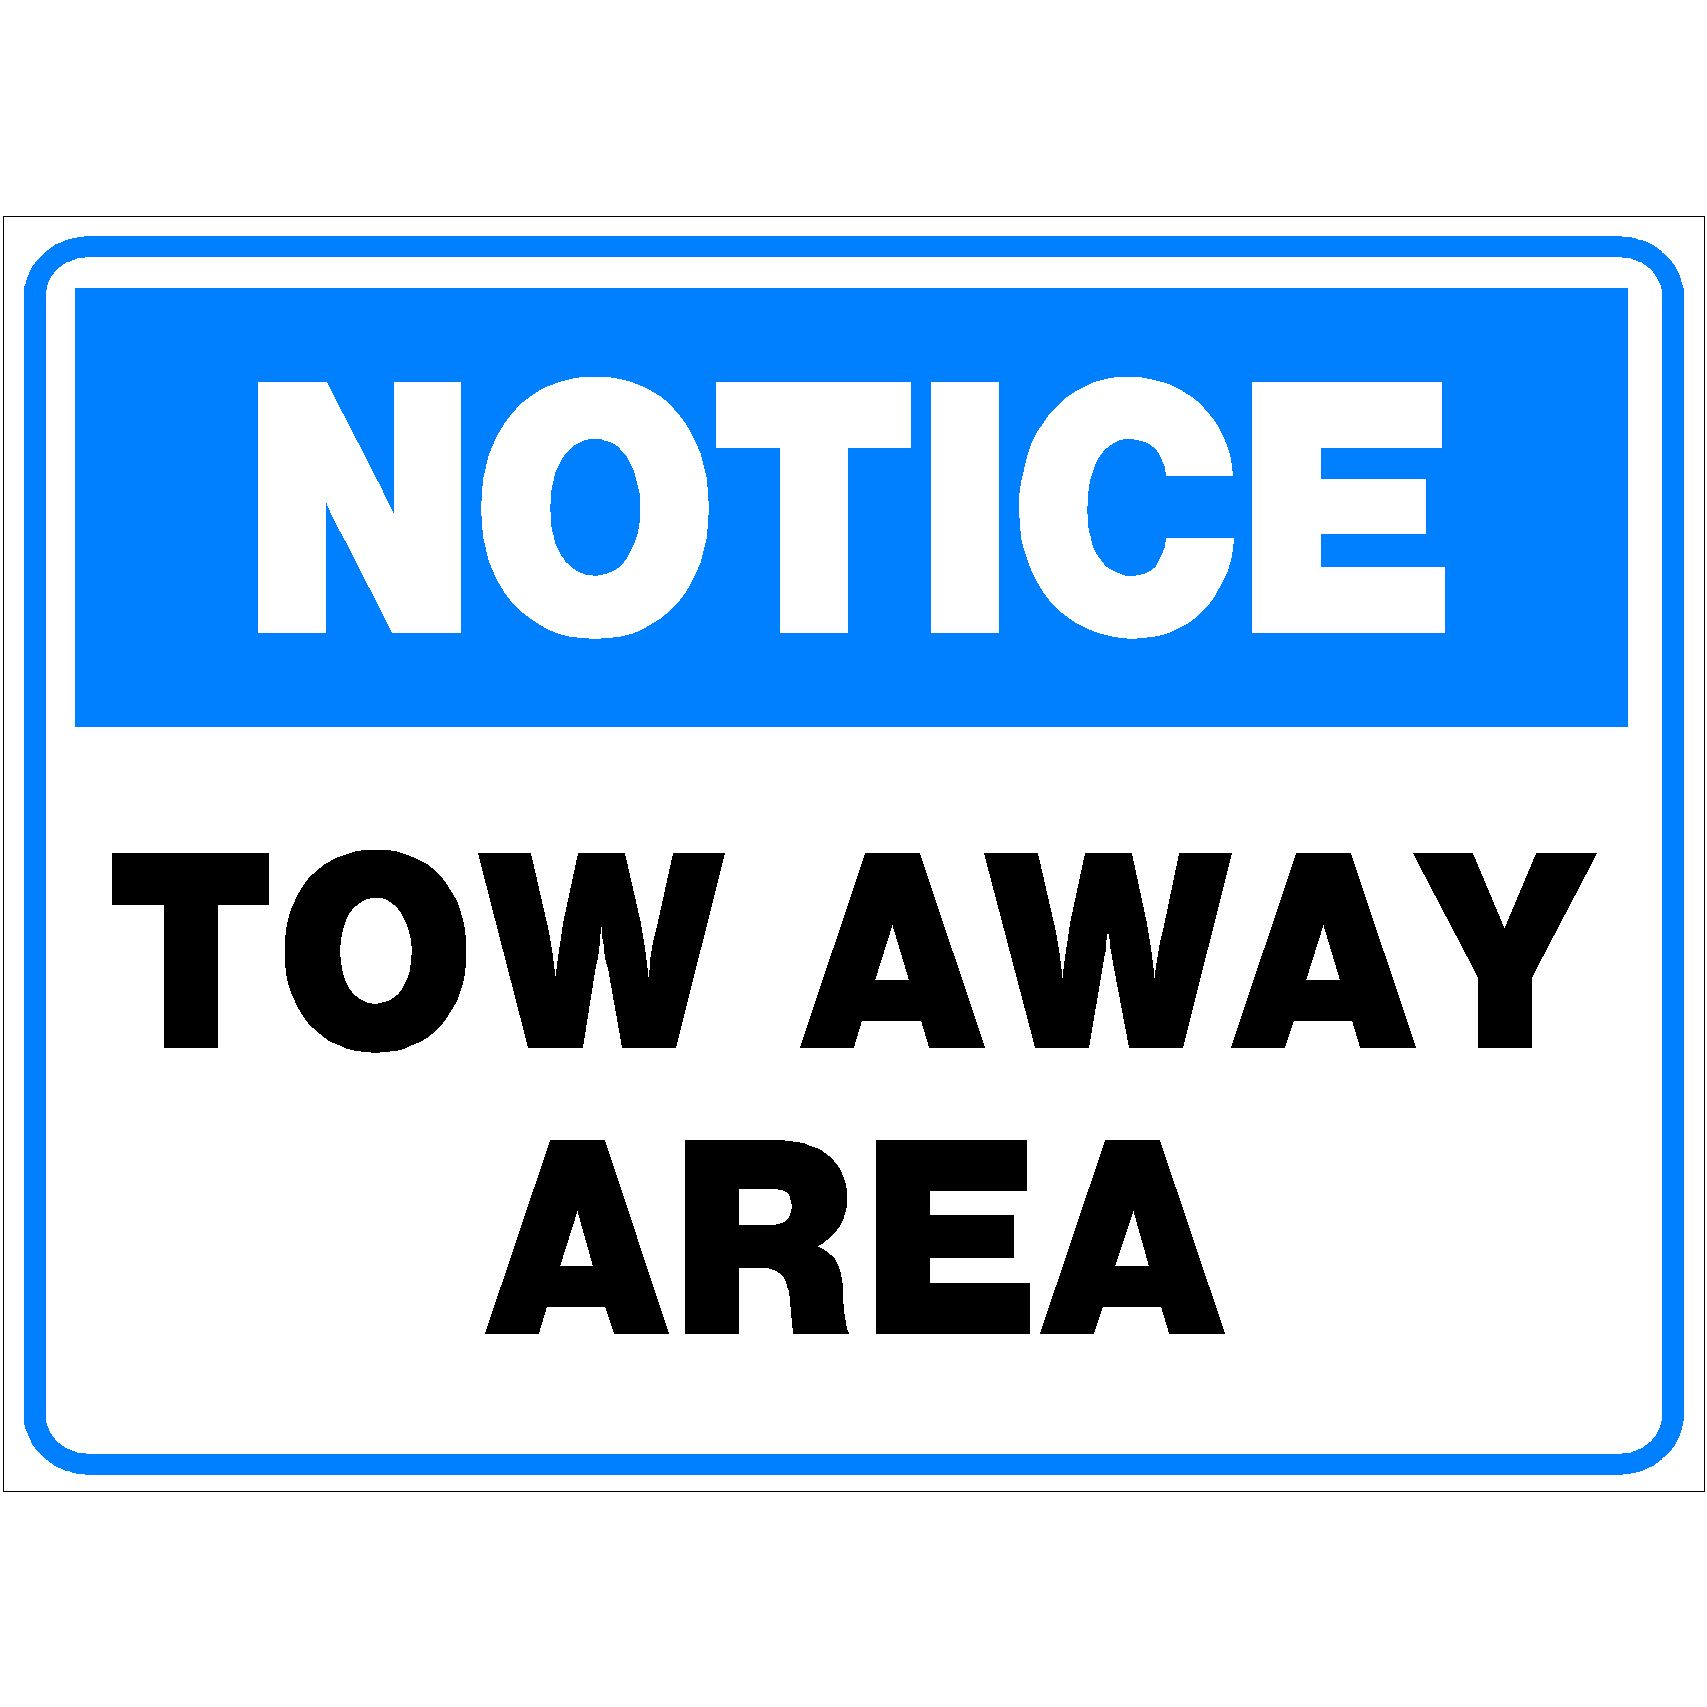 Notice Tow Away Area